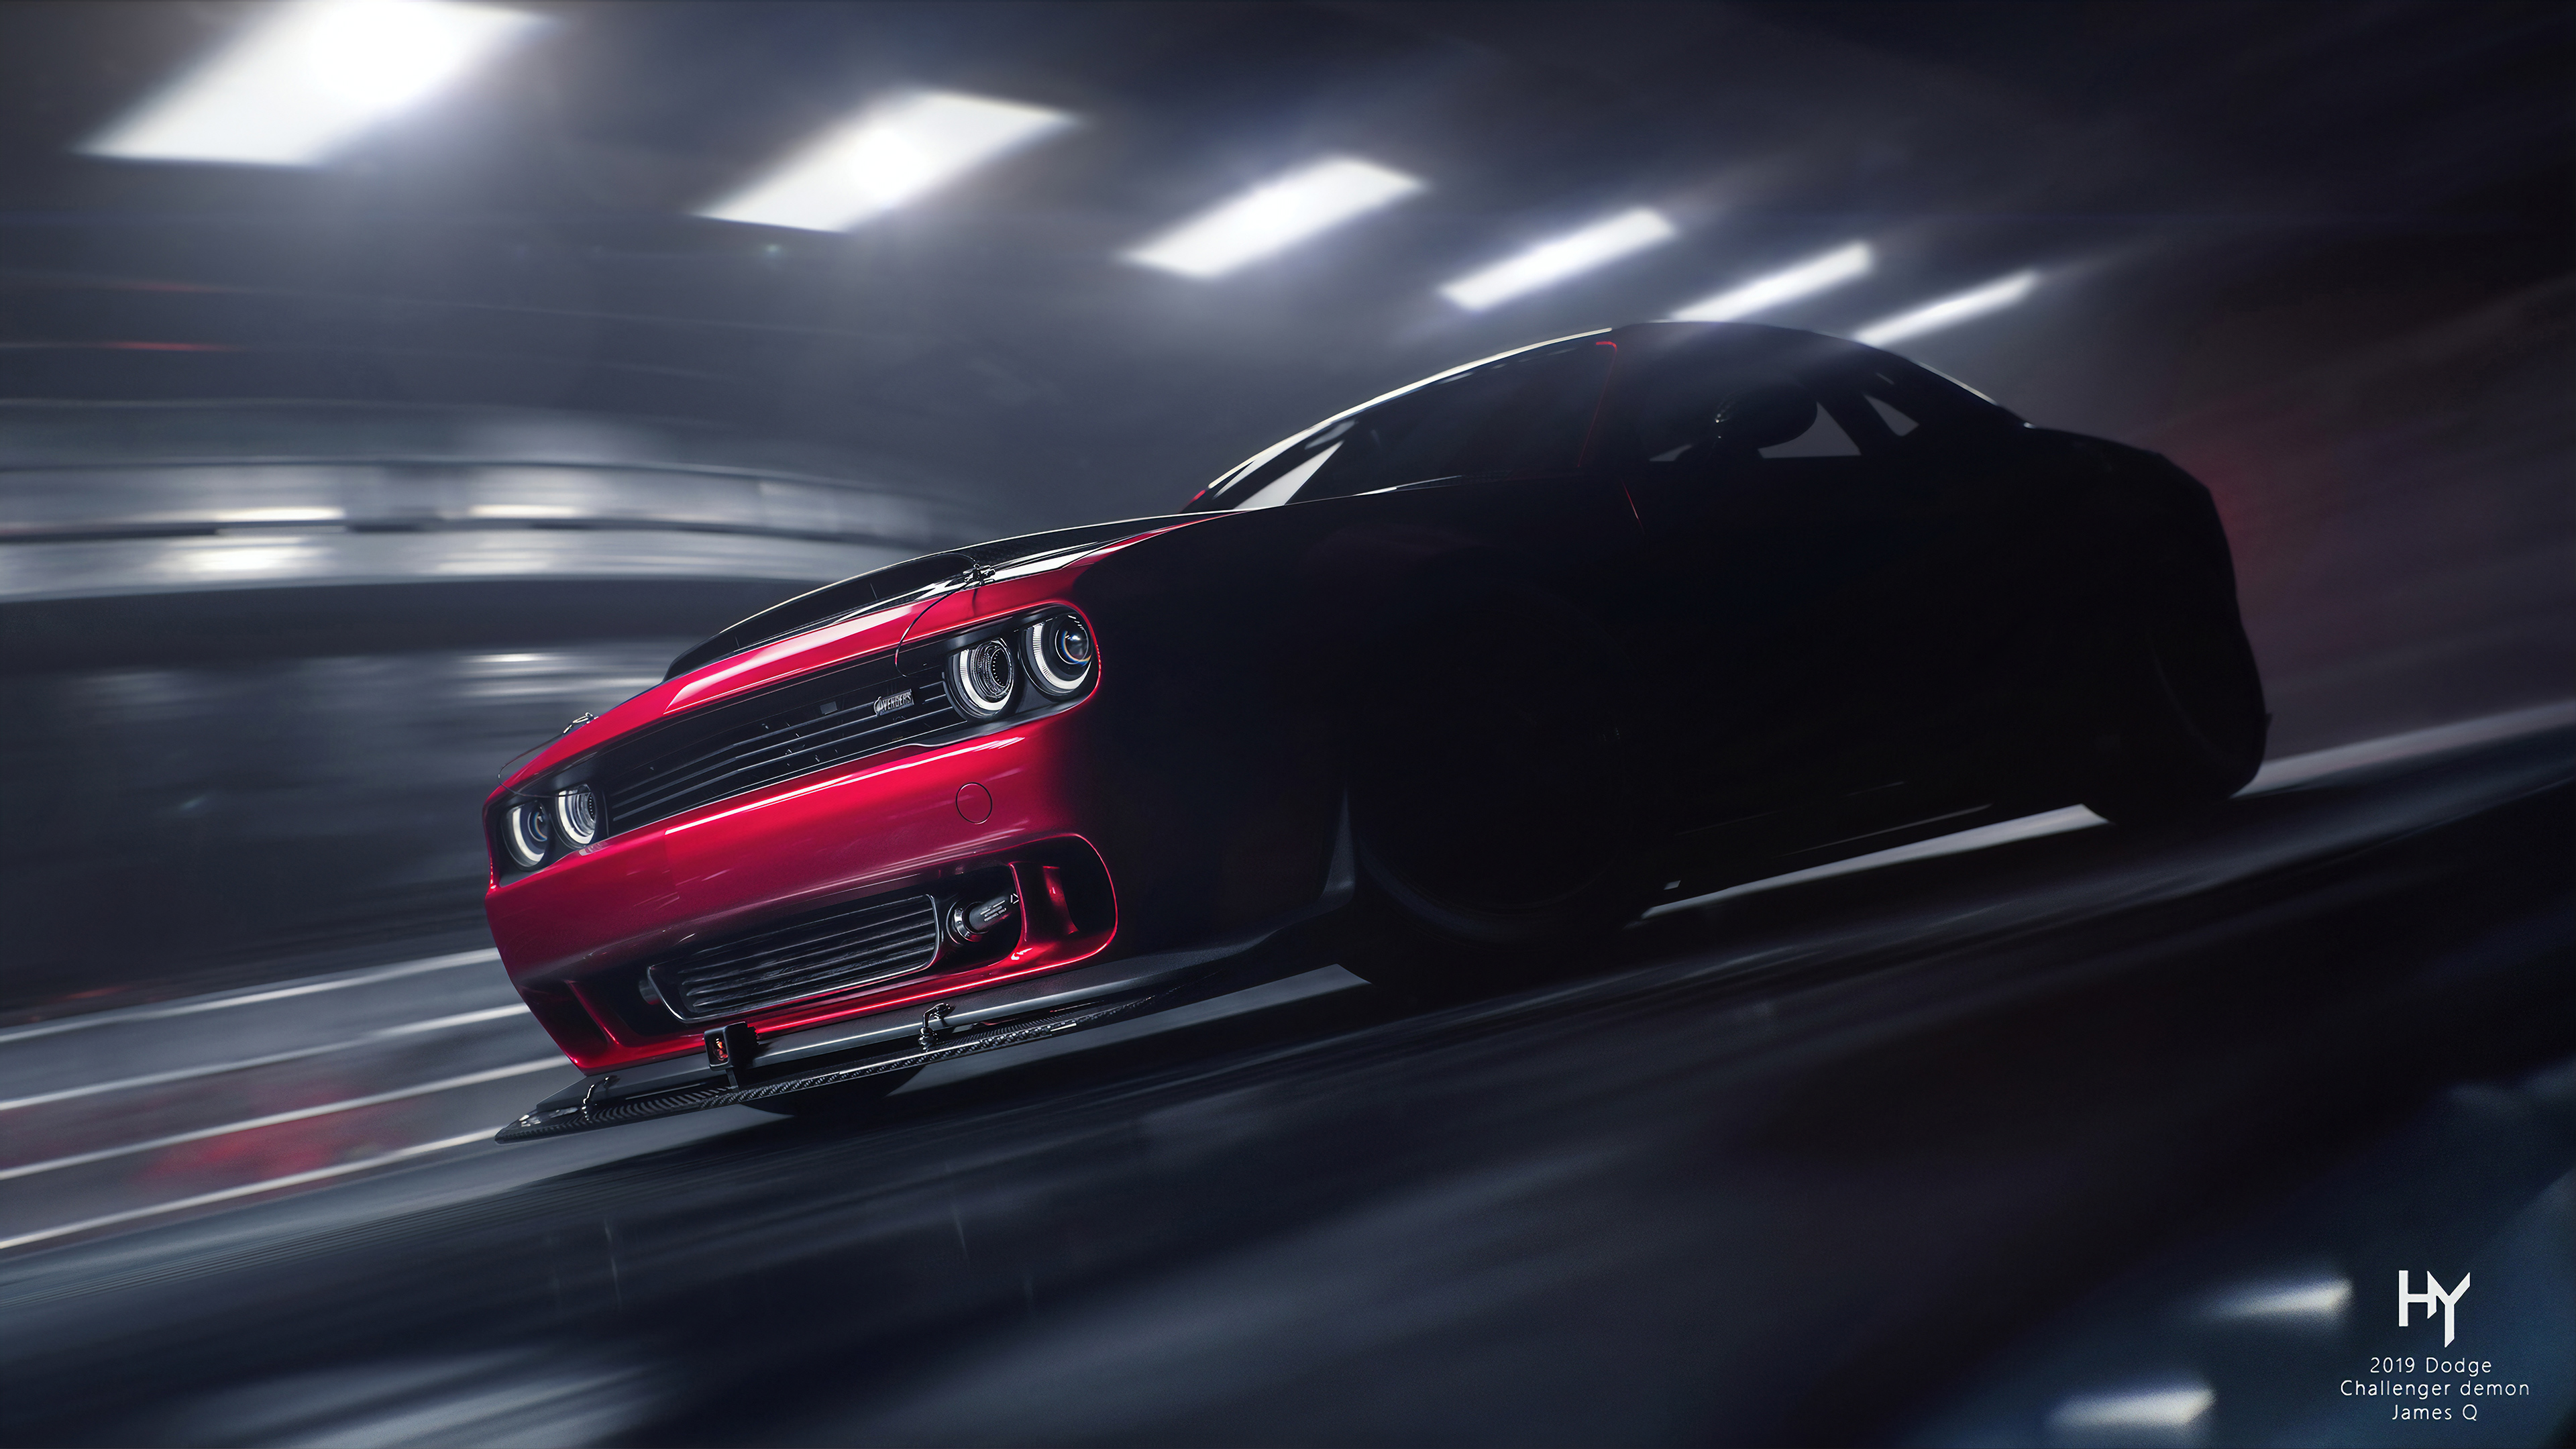 Dodge Challenger Demon Hd Cars 4k Wallpapers Images Backgrounds Photos And Pictures